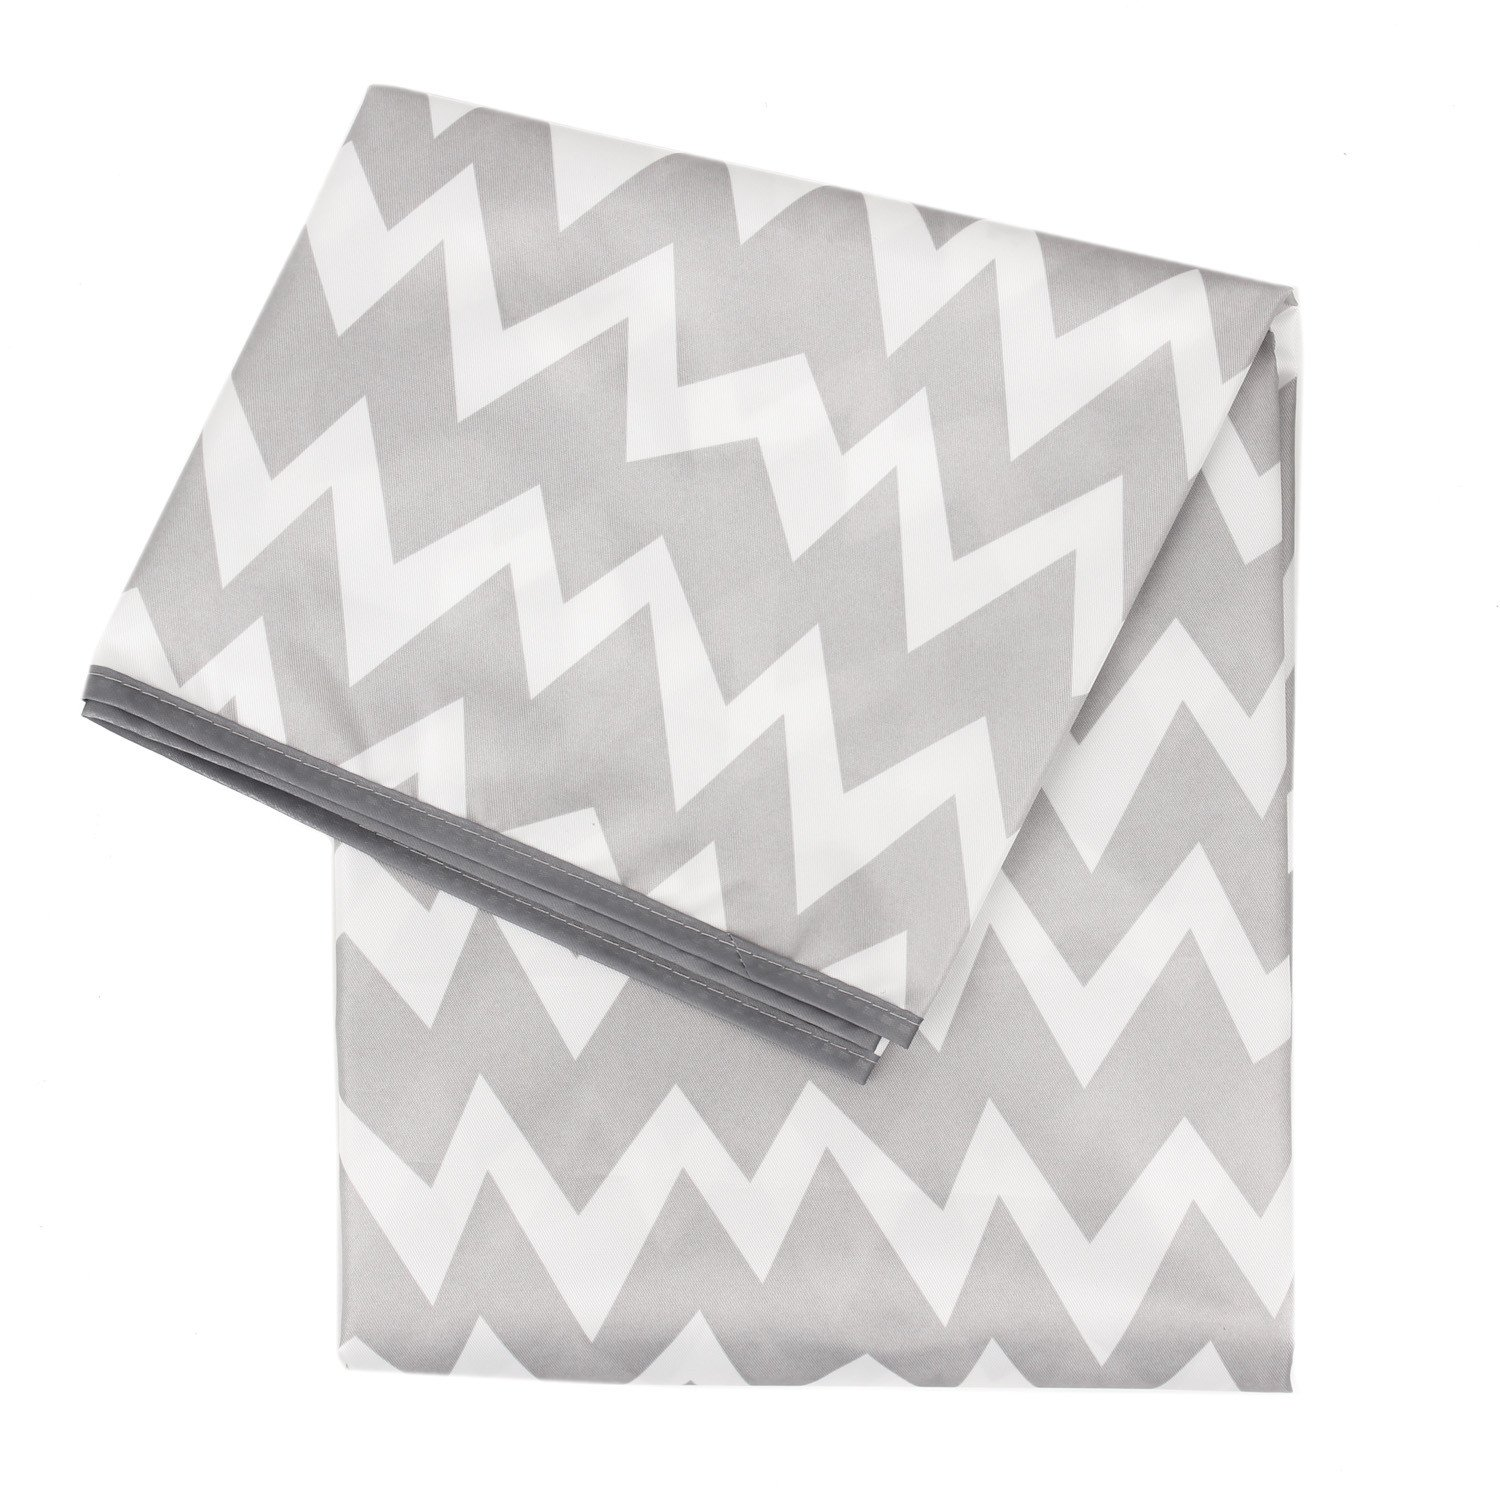 Bumkins Splat Mat, Waterproof, Washable for Floor or Table, Under Highchairs, Art, Crafts, Playtime 42x42 - Gray Chevron by Bumkins